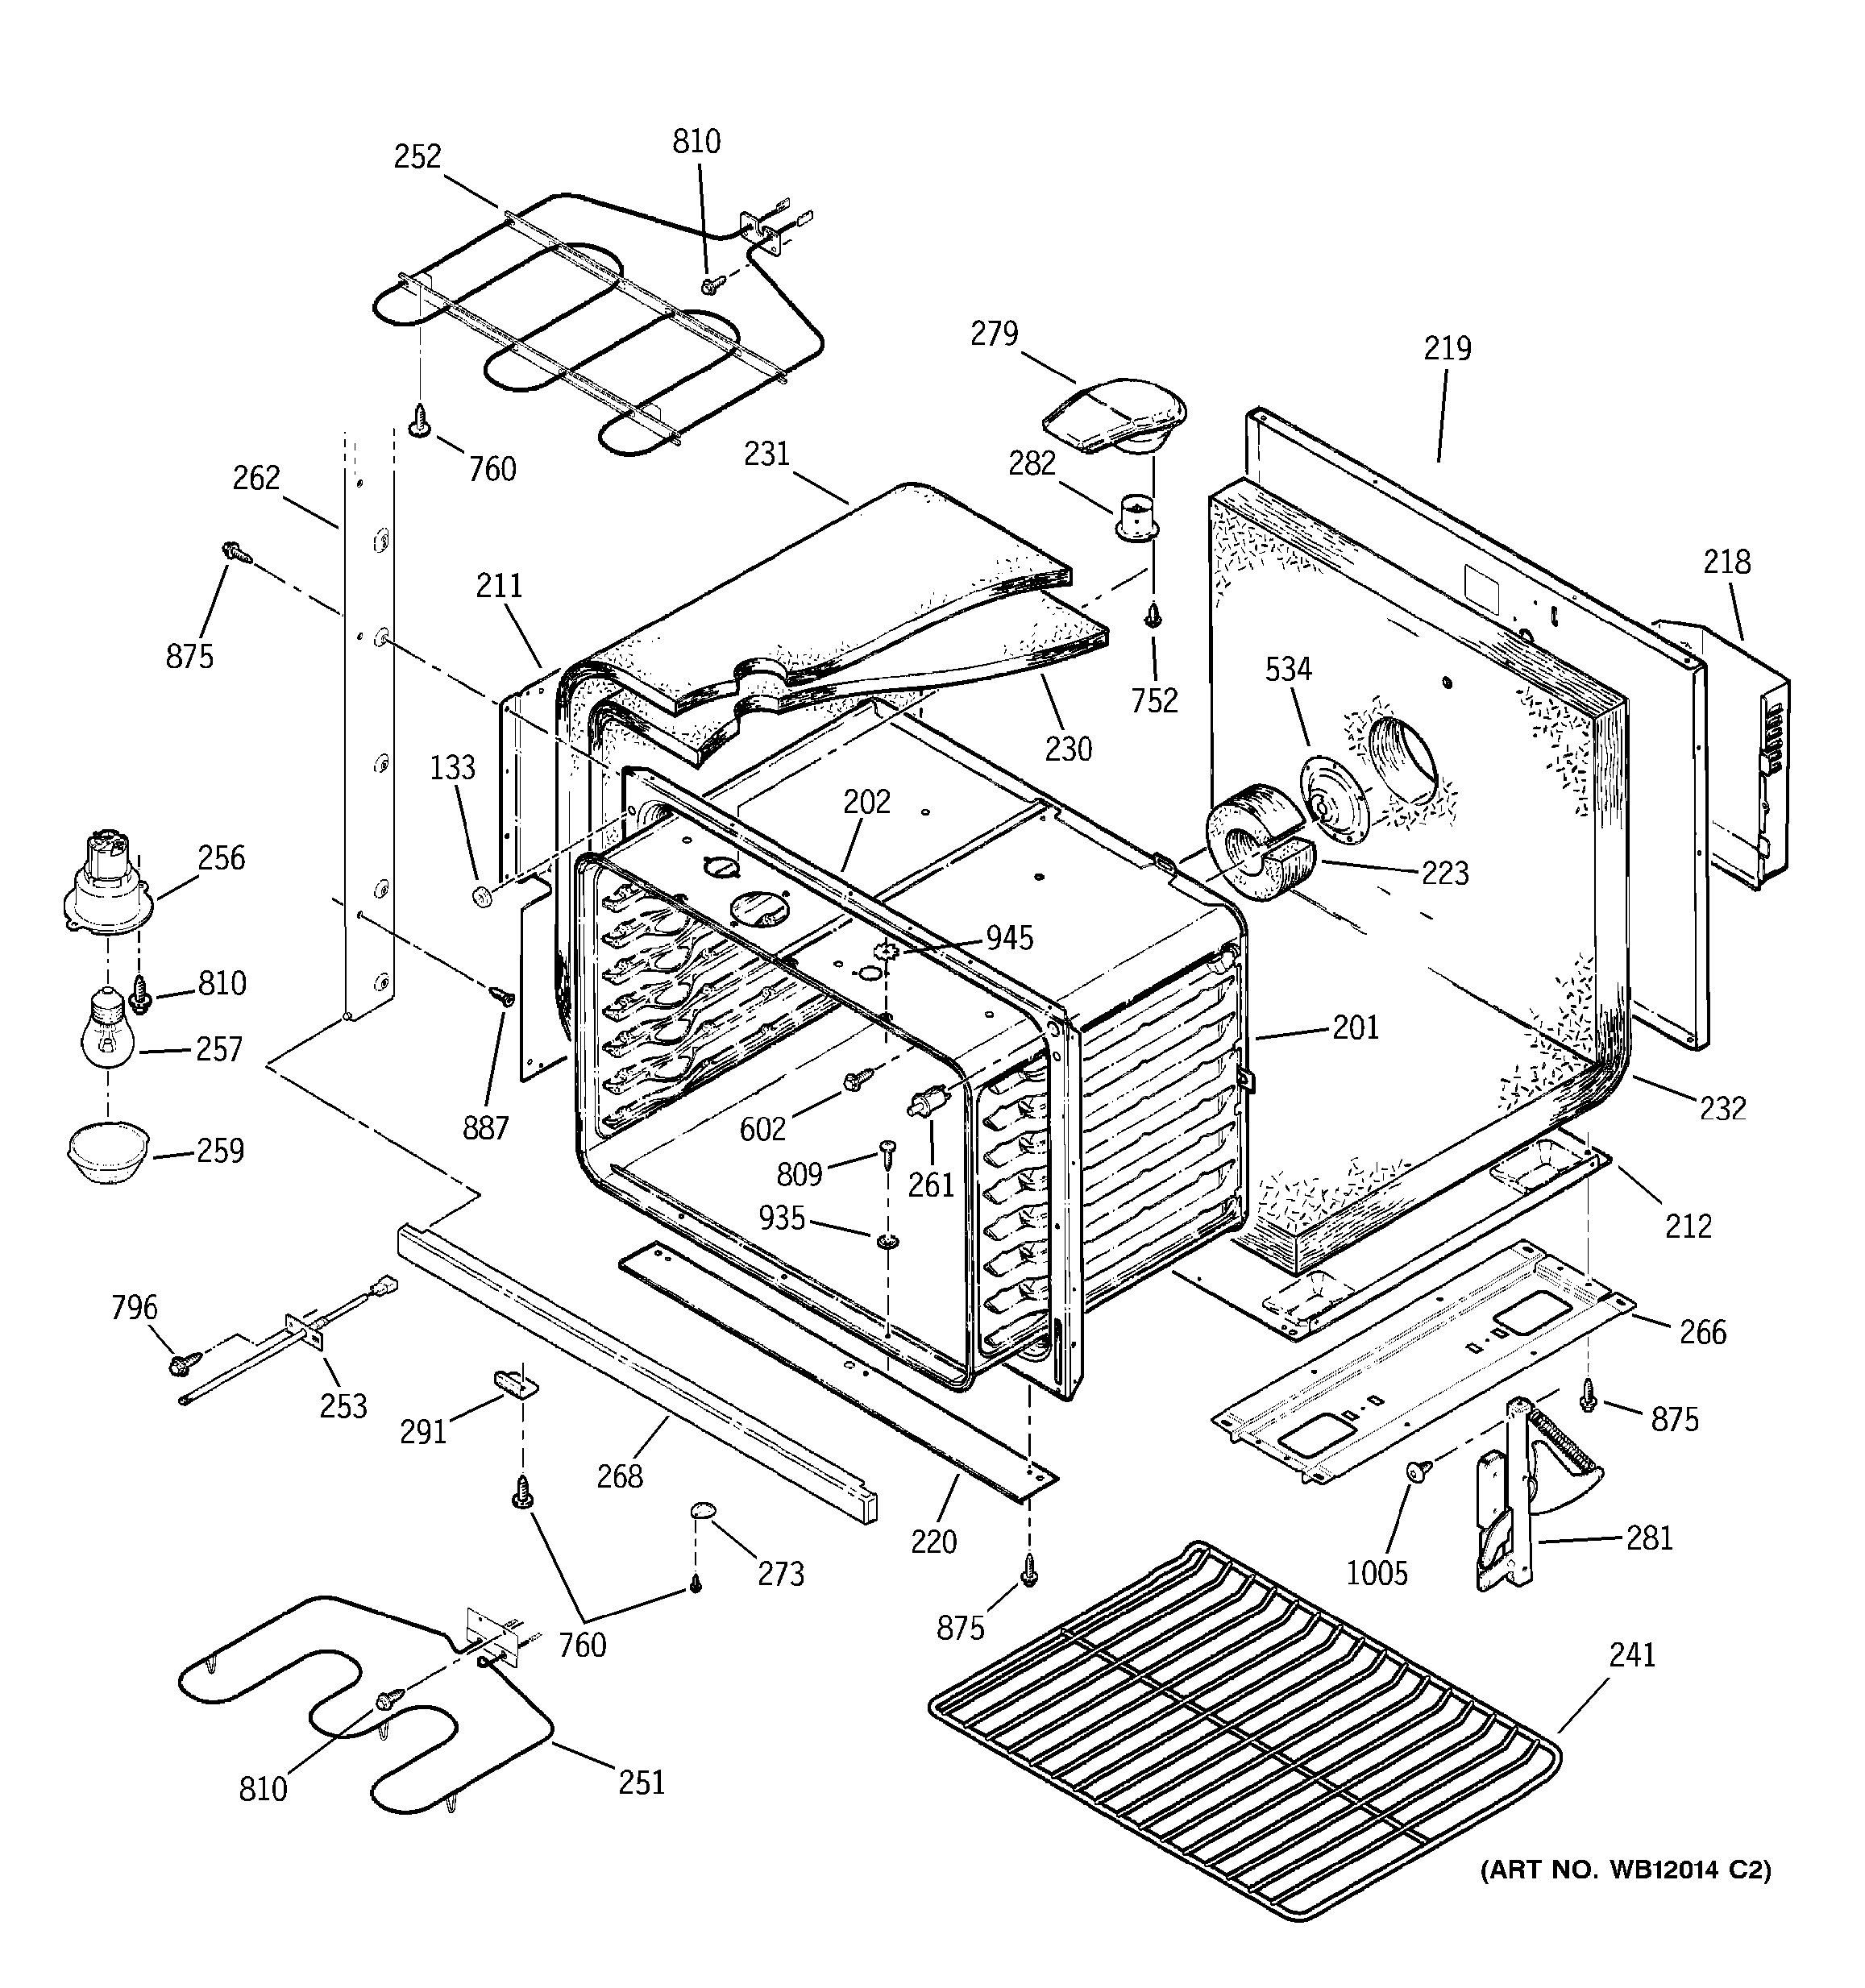 Assembly View For Lower Body Parts